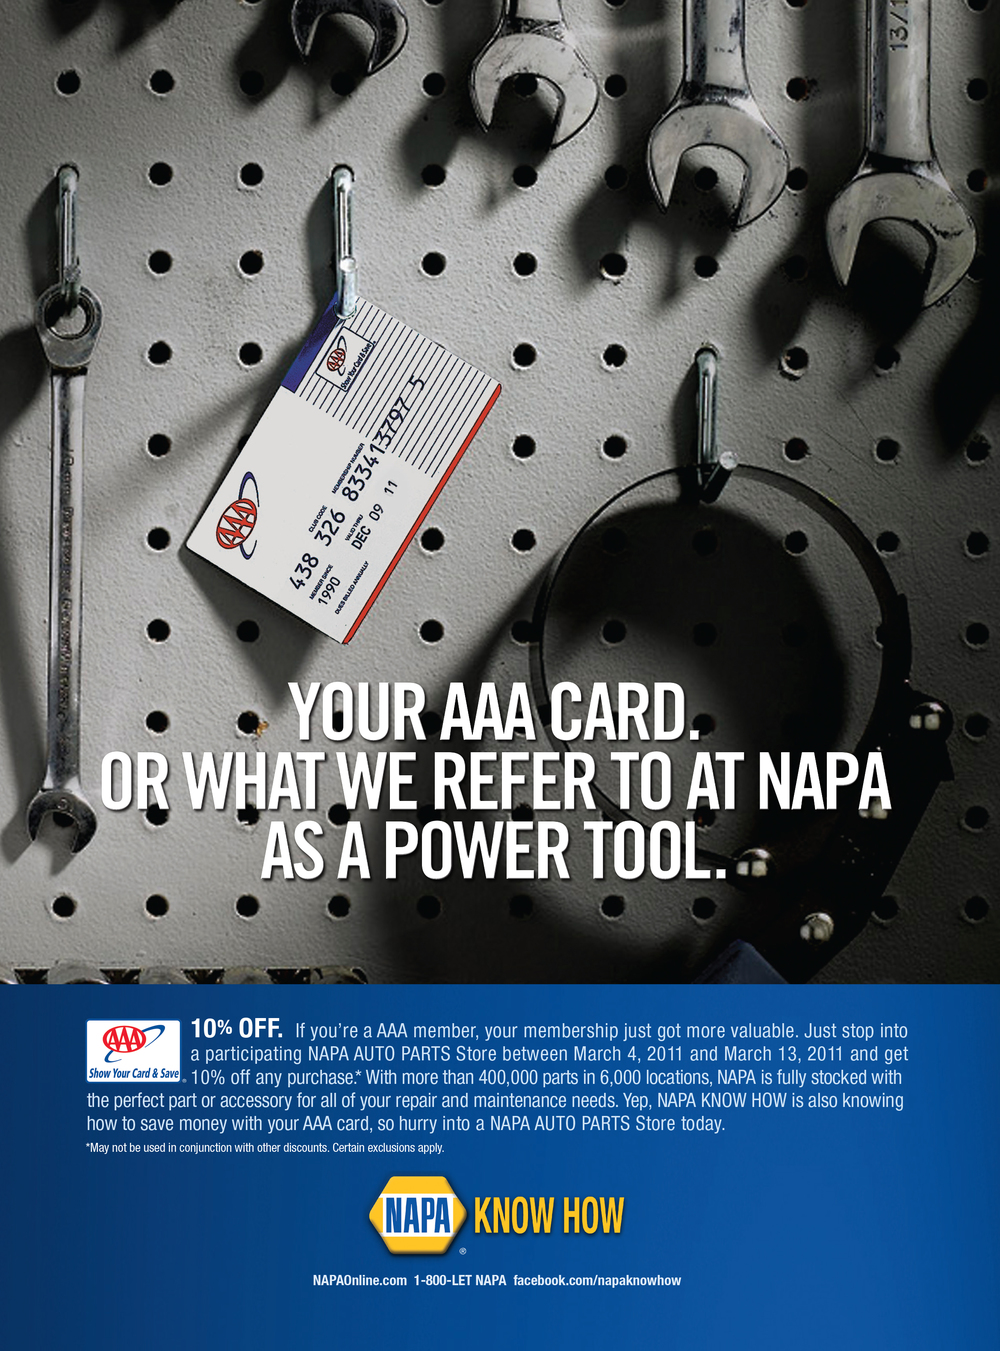 T1-8637A-3 AAA Time Mag Print Ad-cropped.jpg